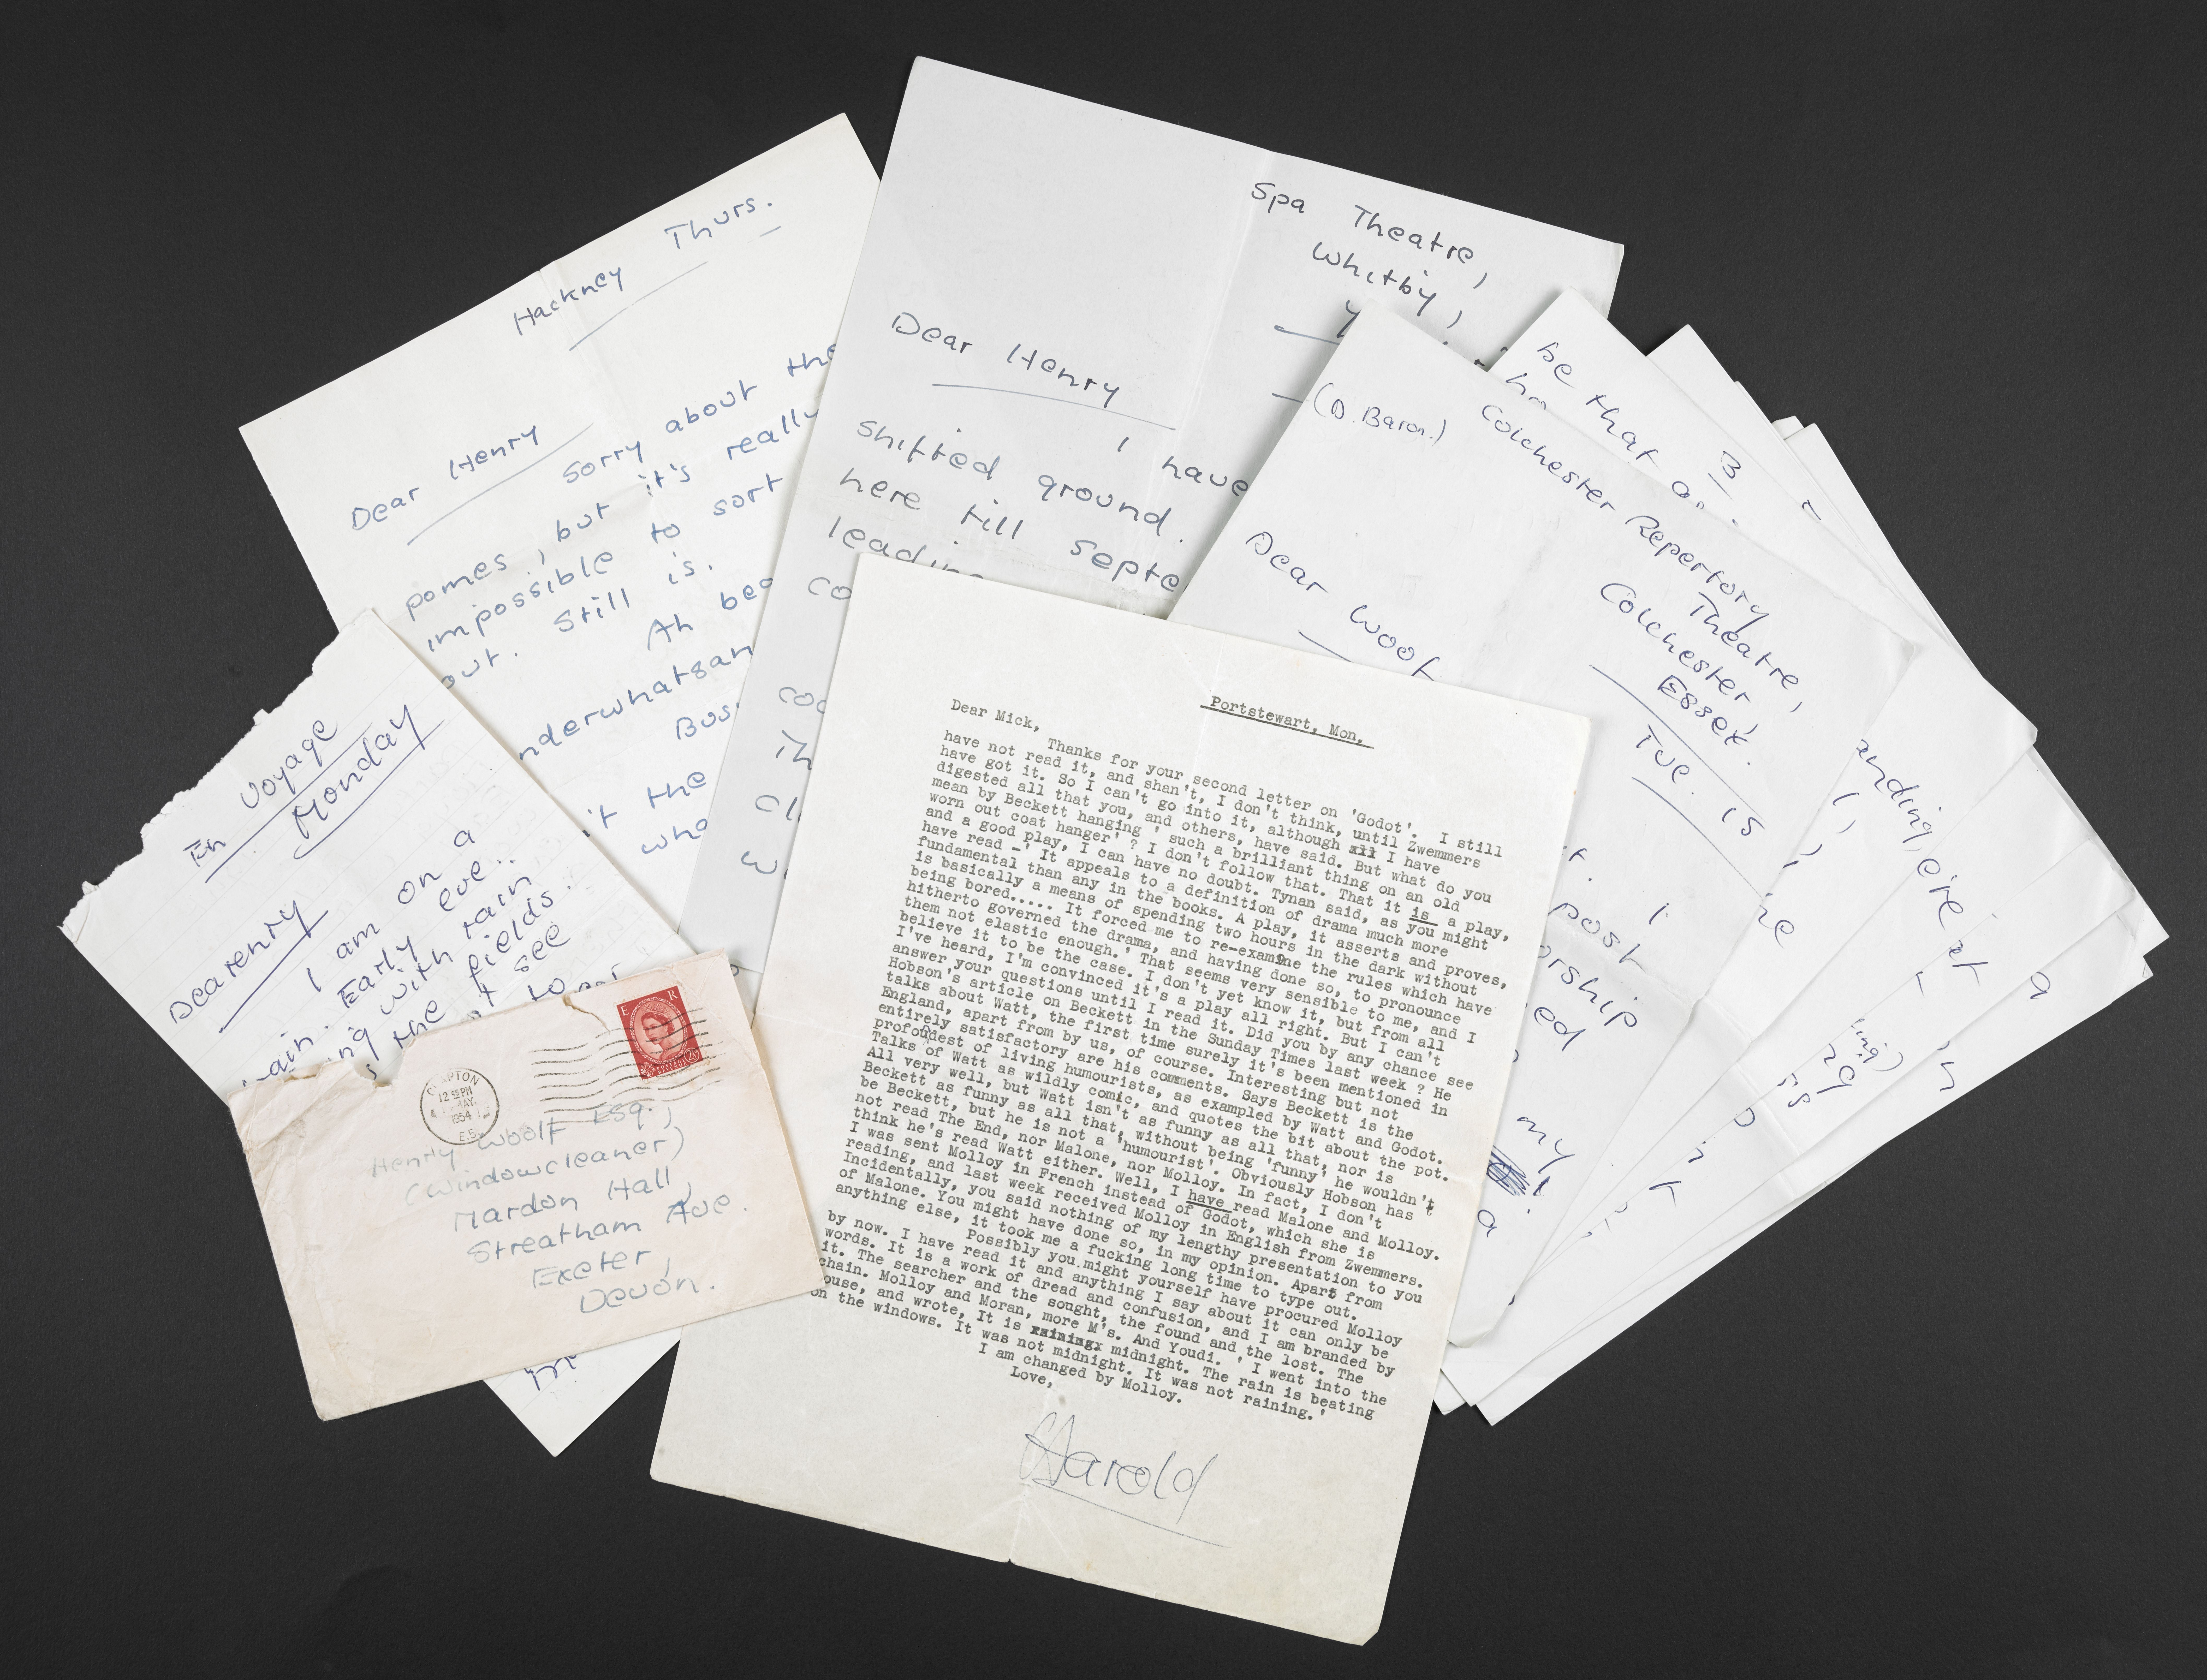 A selection of Harold Pinter's early letters acquired by the British Library. Courtesy of the Estate of Harold Pinter